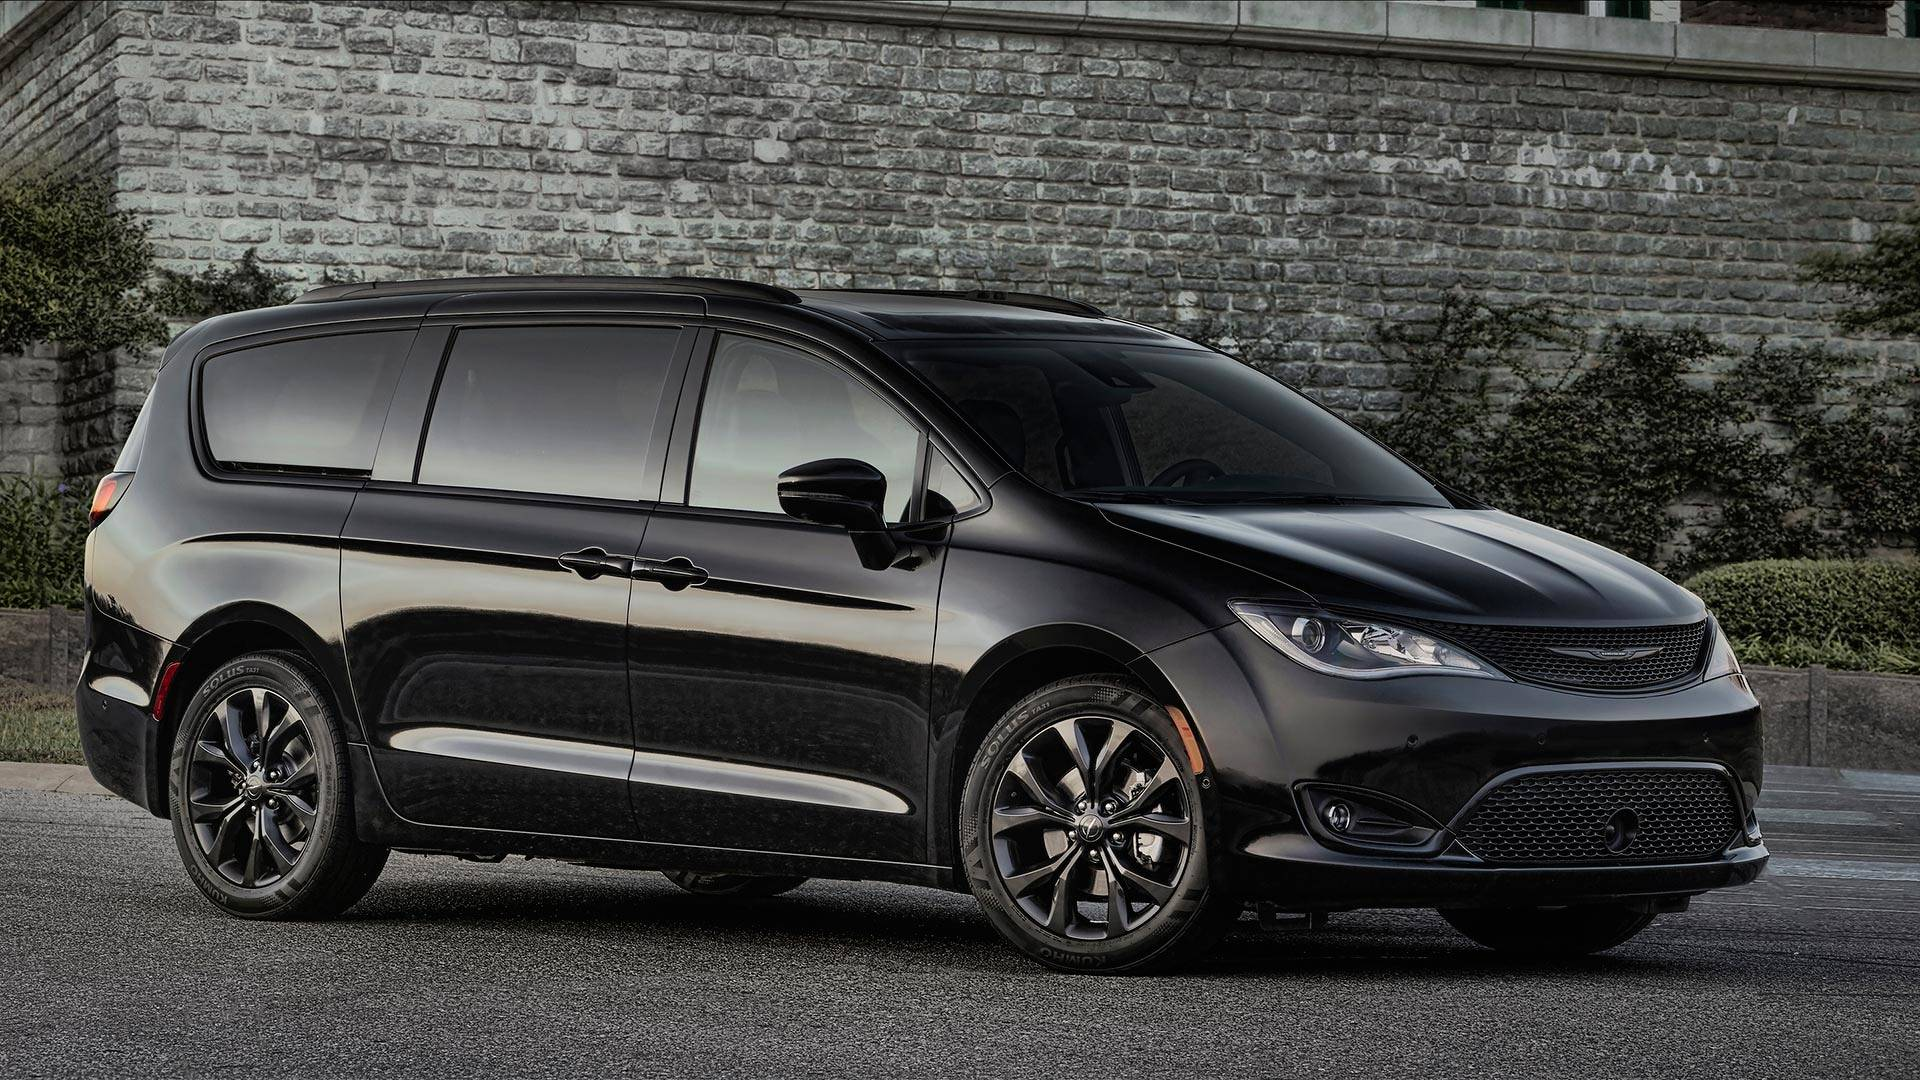 chrysler recalls 2017 pacifica hybrid not affected autoevolution. Black Bedroom Furniture Sets. Home Design Ideas